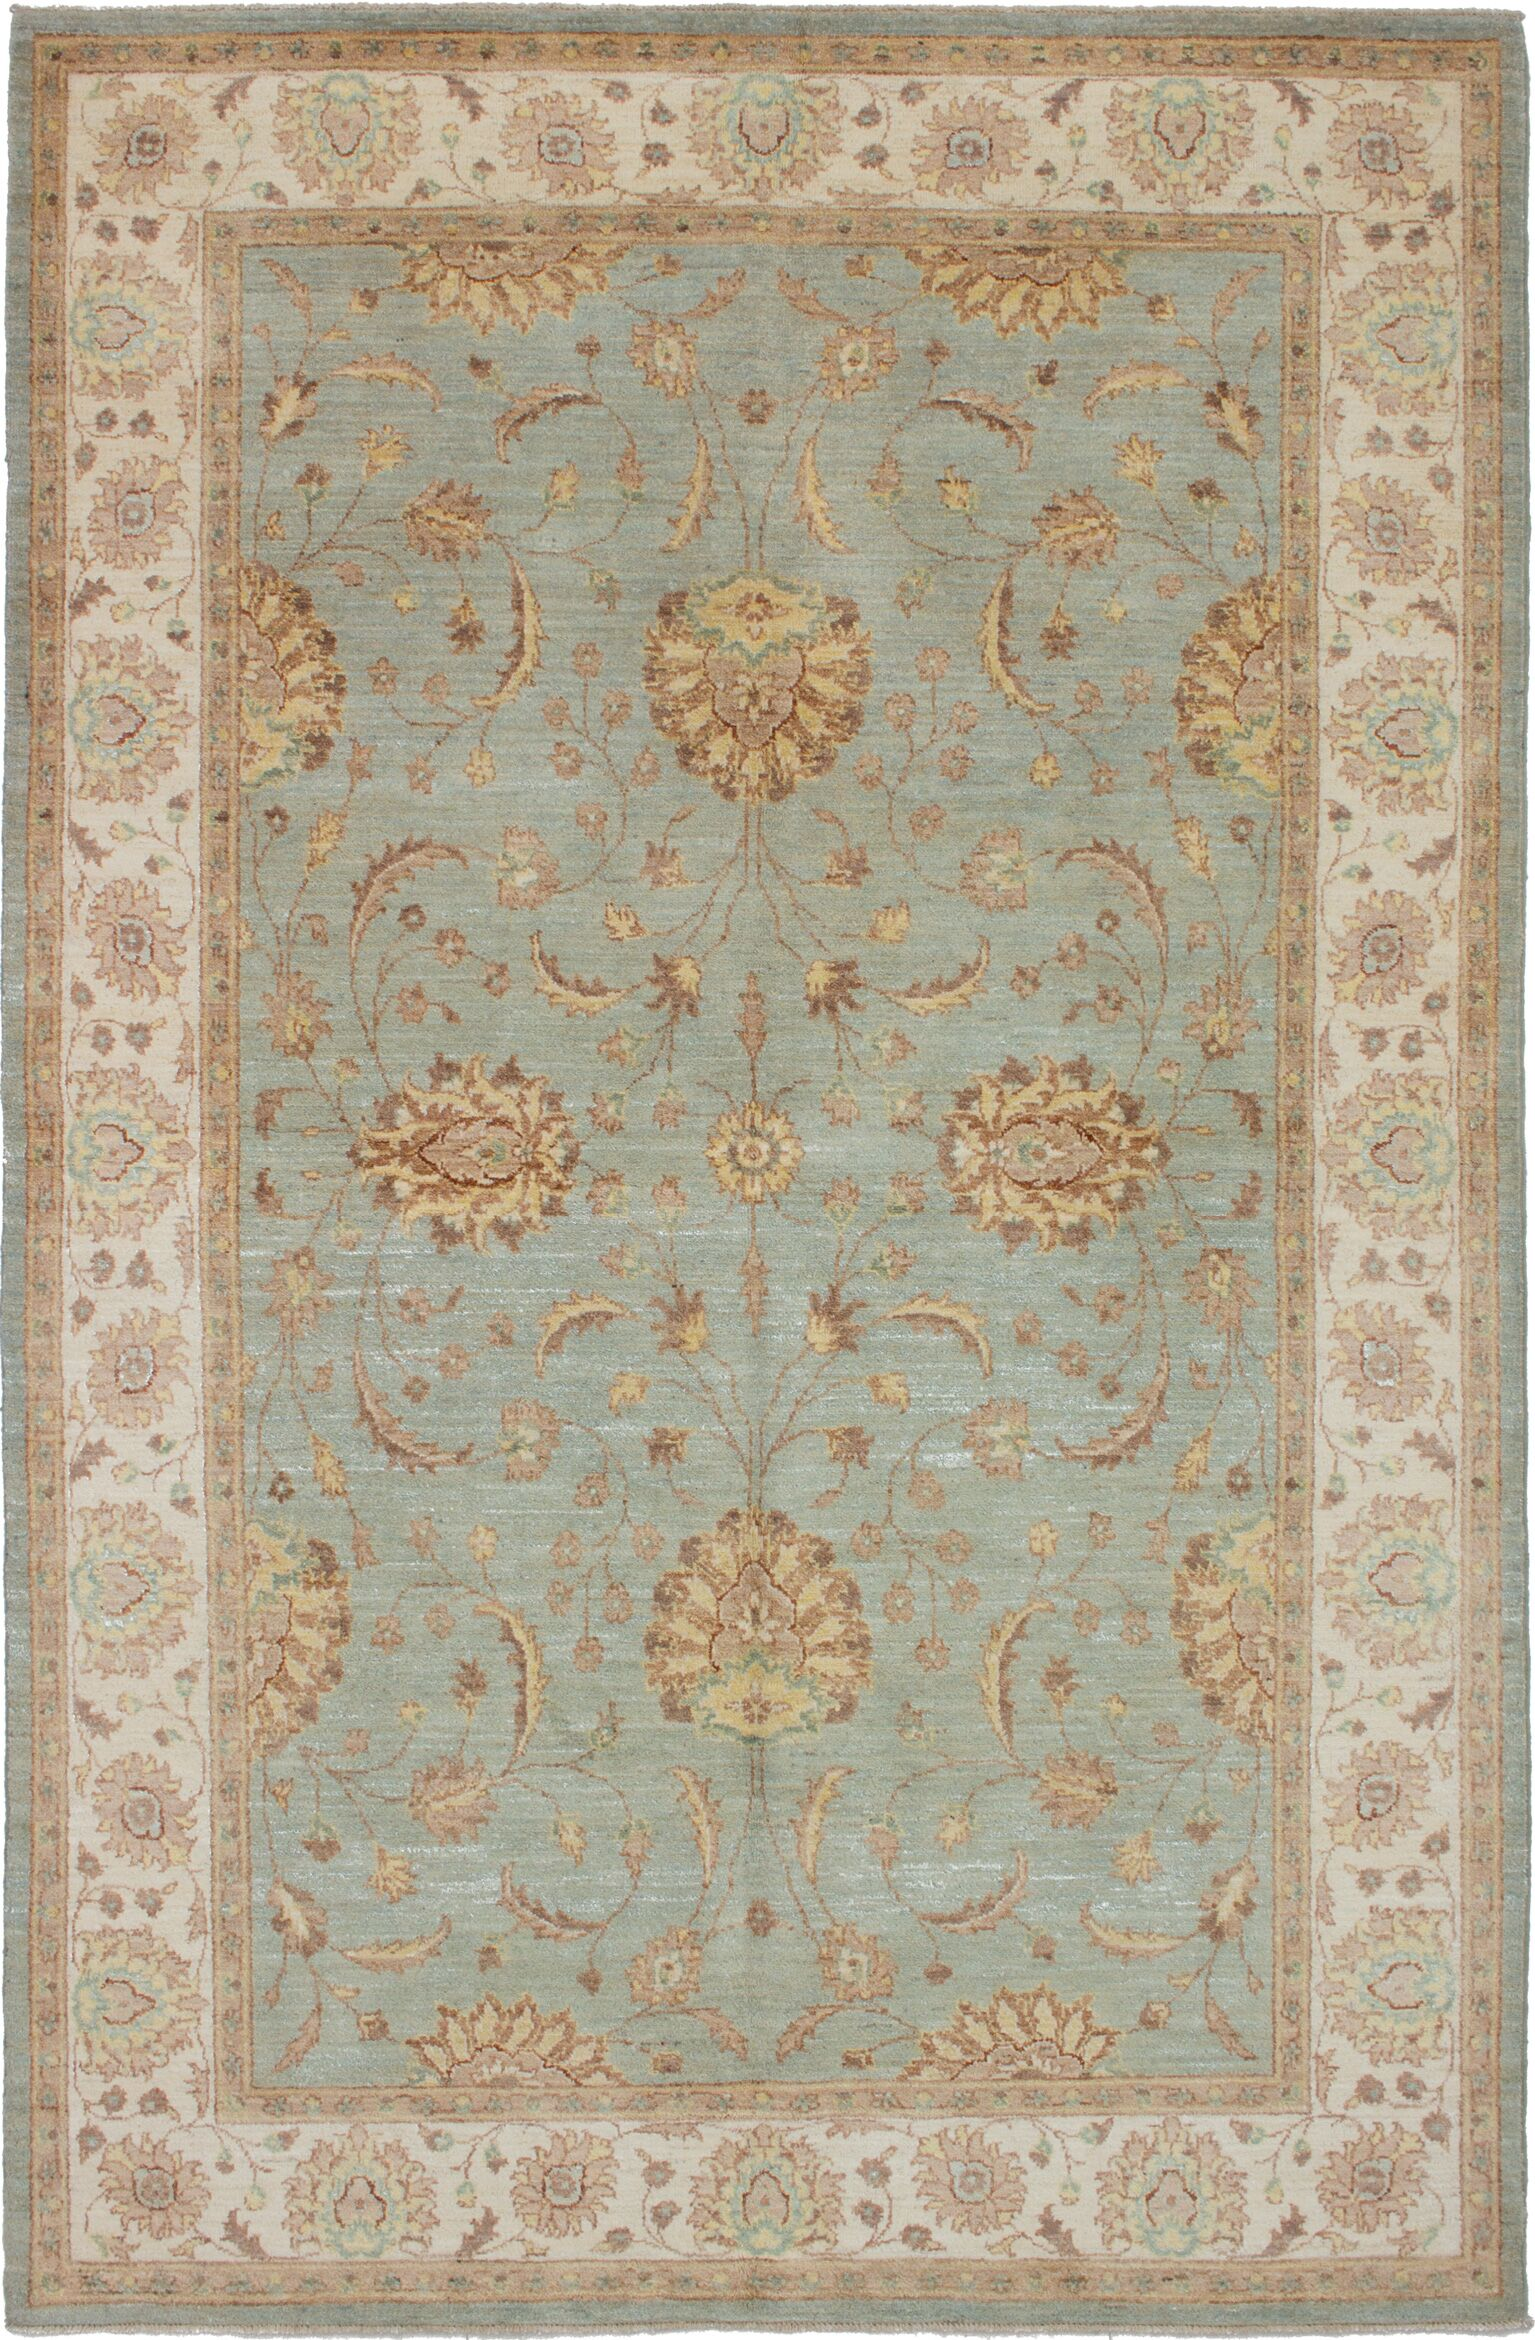 One-of-a-Kind Alasan Hand-Knotted Wool Light Blue Area Rug